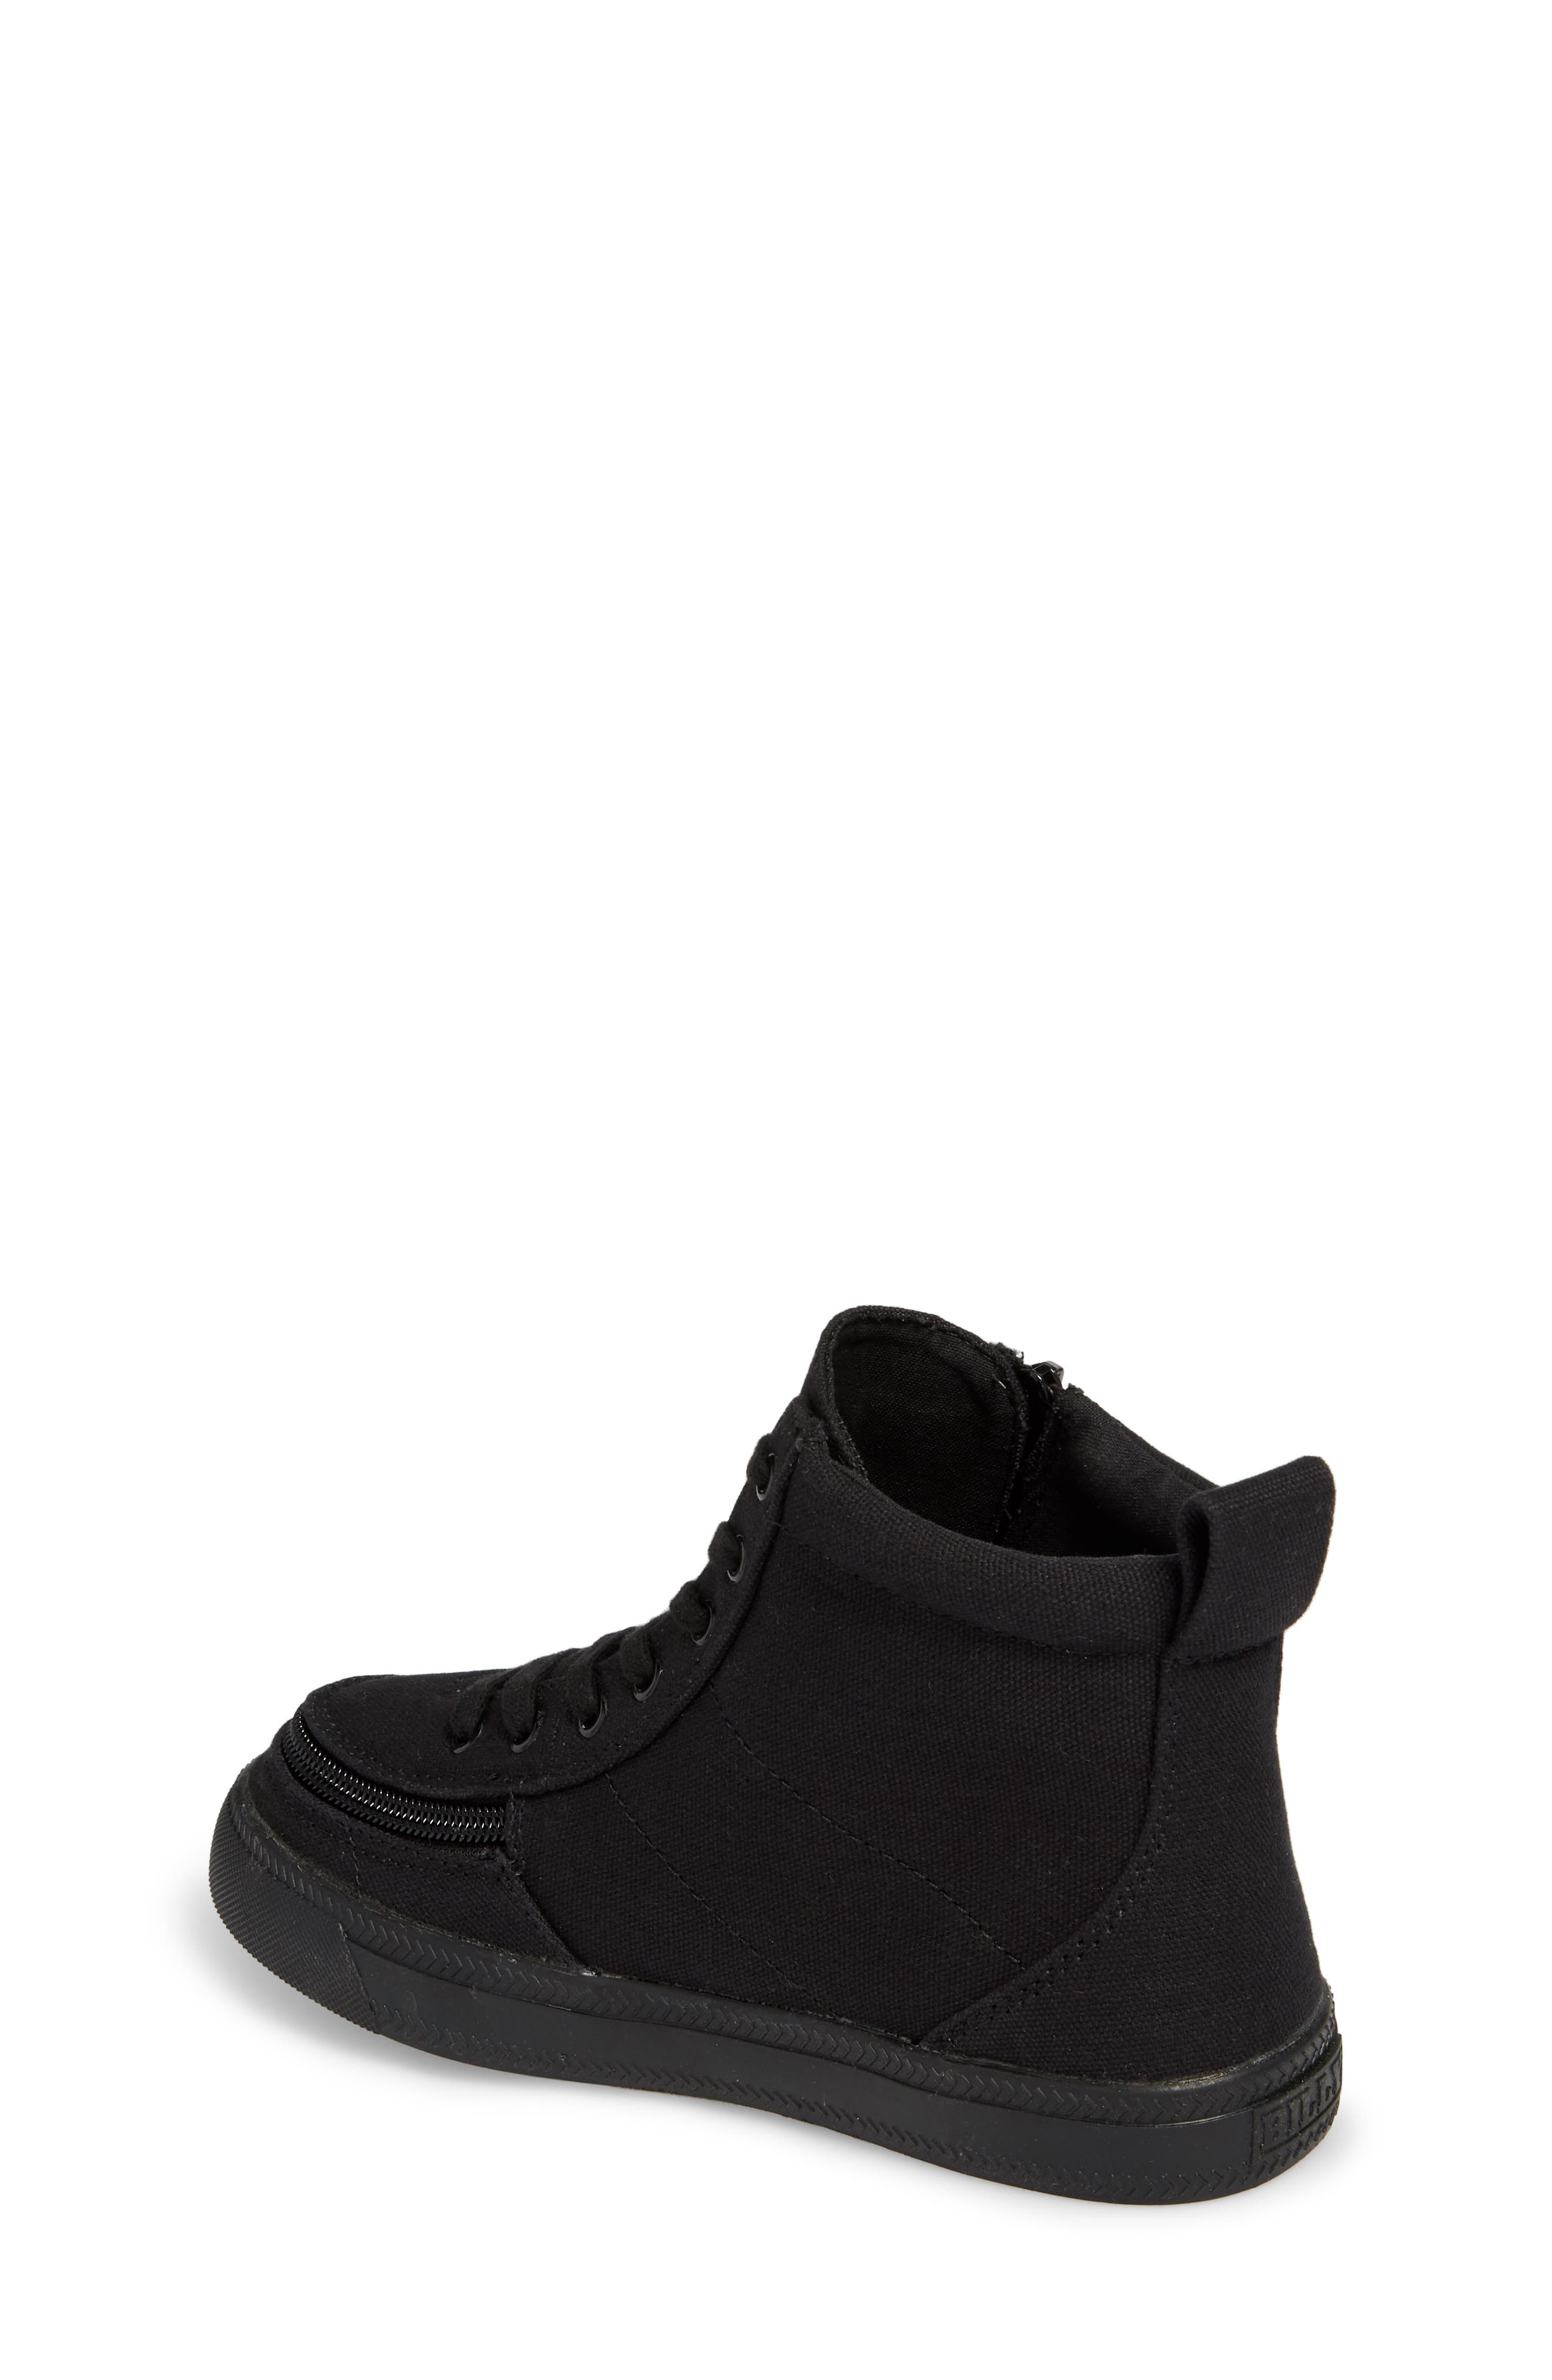 BILLY FOOTWEAR, Classic Hi-Rise Sneaker, Alternate thumbnail 2, color, BLACK TO THE FLOOR